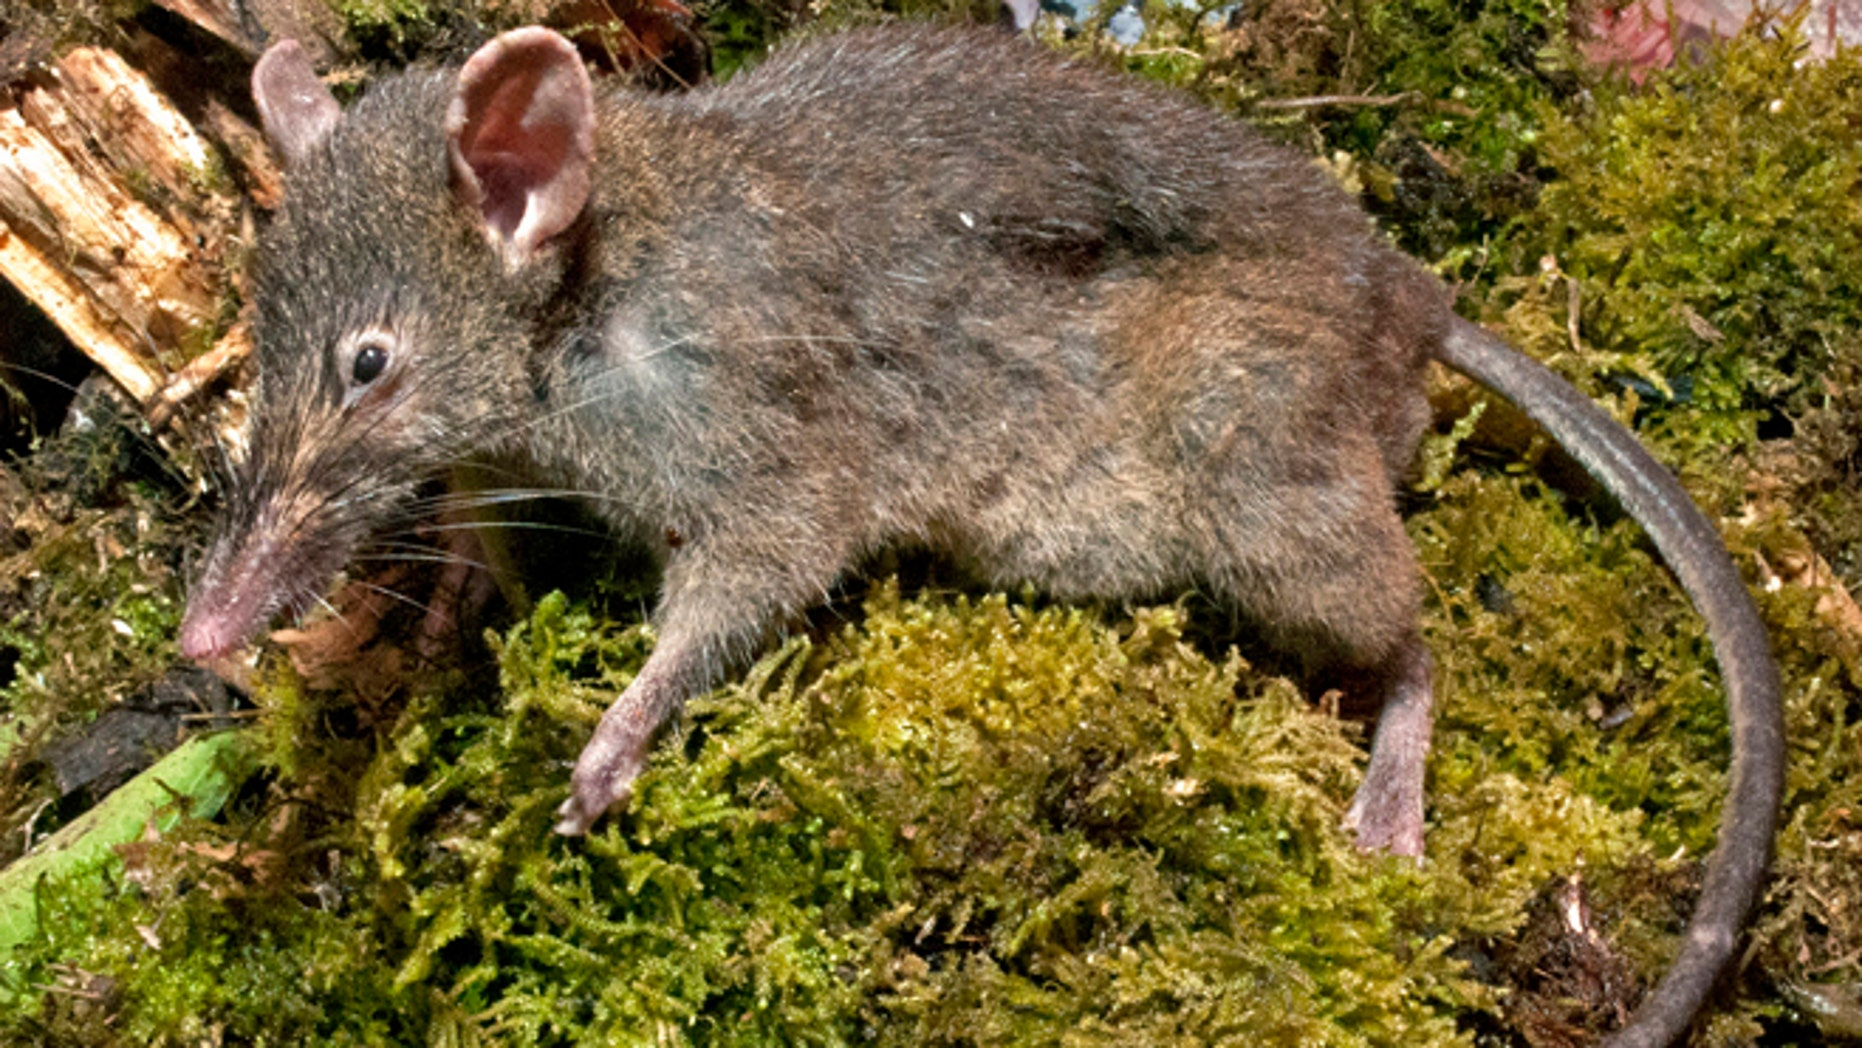 A Paucidentomys vermidax, a new species of rat, that was found in the forests of southern Sulawesi Island, Indonesia, in 2011. The unique rat that lives off earthworms and doesn't chew or gnaw is the only rodent out of more than 2,200 known species that does not have molars and instead has bicuspid upper incisors.